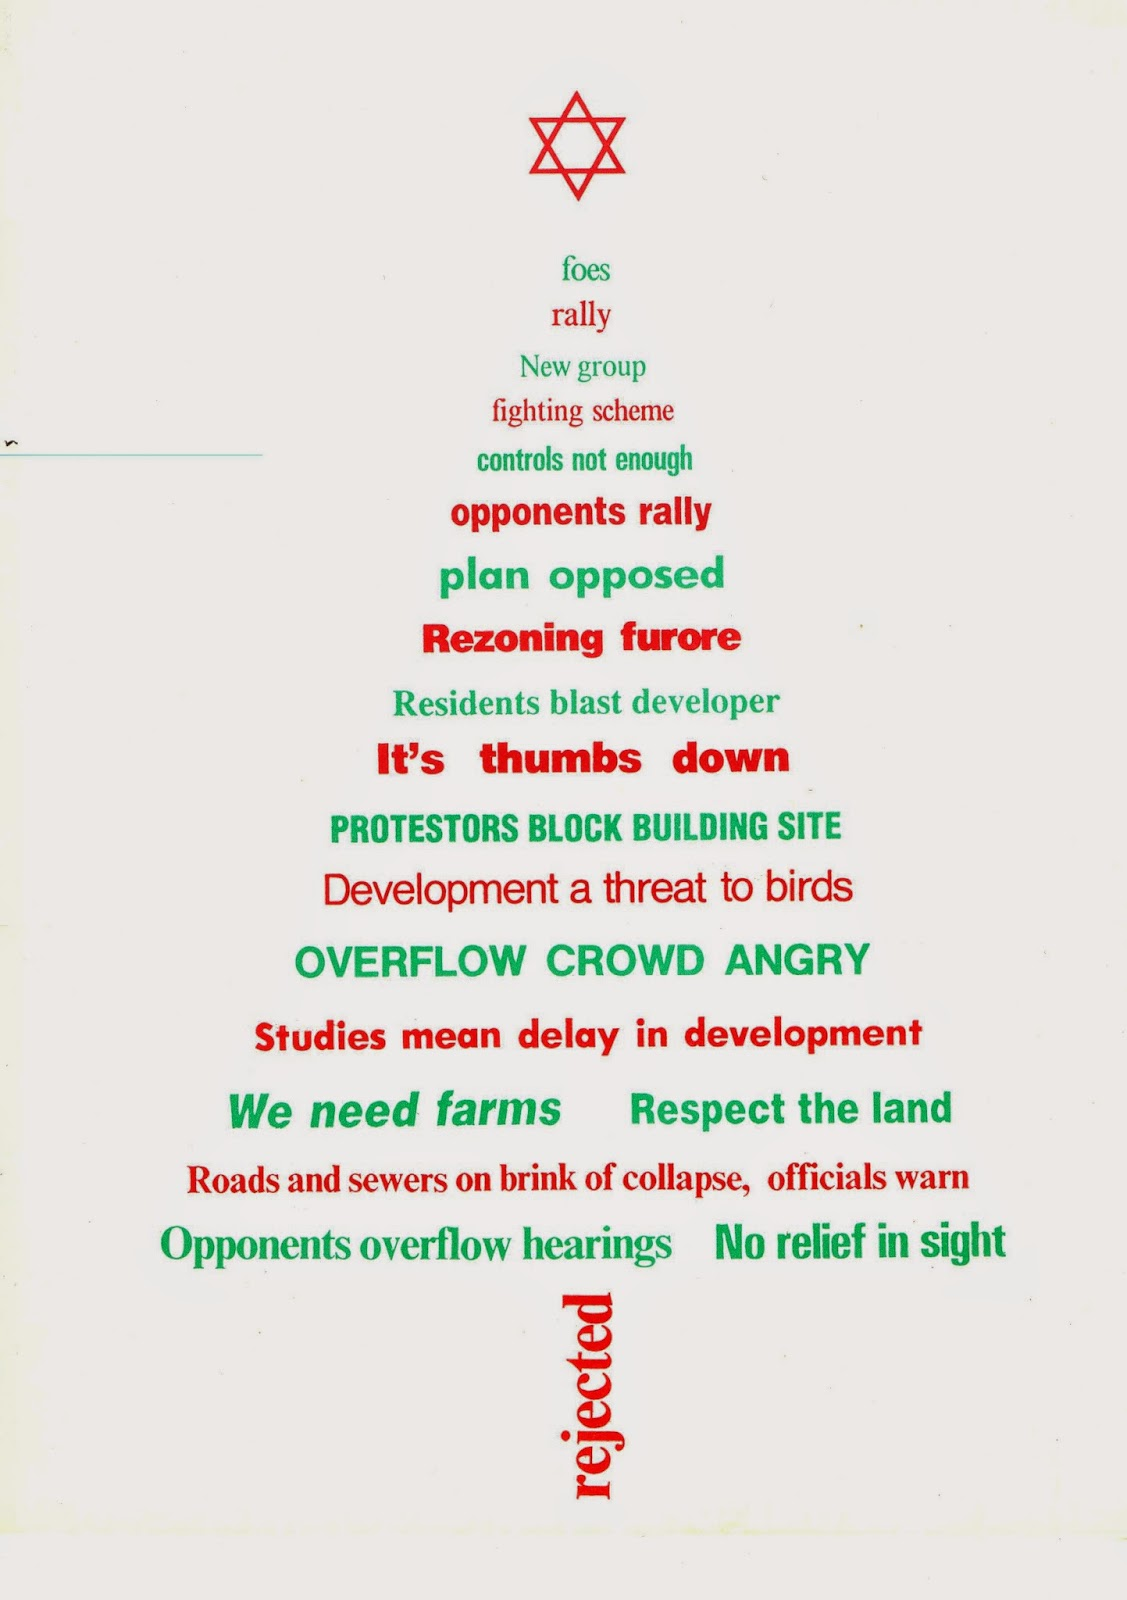 Michael gellers blog geller christmas cards over the years in the late eighties after the failure of our proposal to rezone the spetifore lands i somehow got the idea of creating a card out of the newspaper m4hsunfo